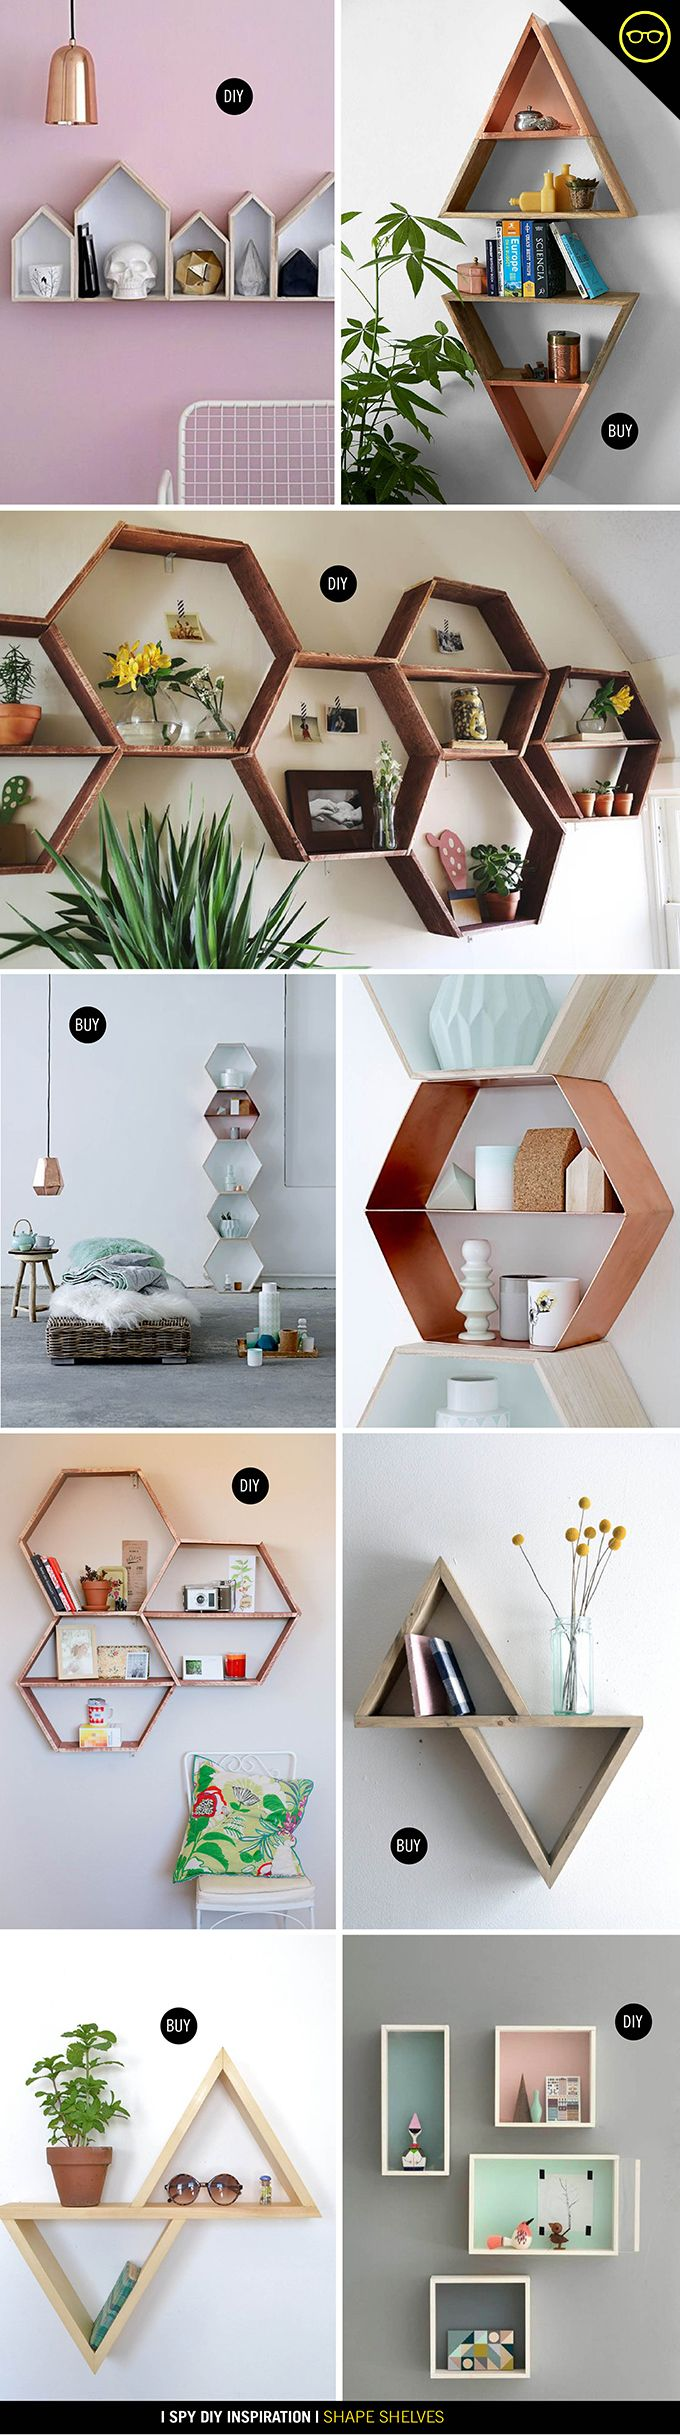 #shelves #wood #geometric #composiciones #walls                                                                                                                                                      Más